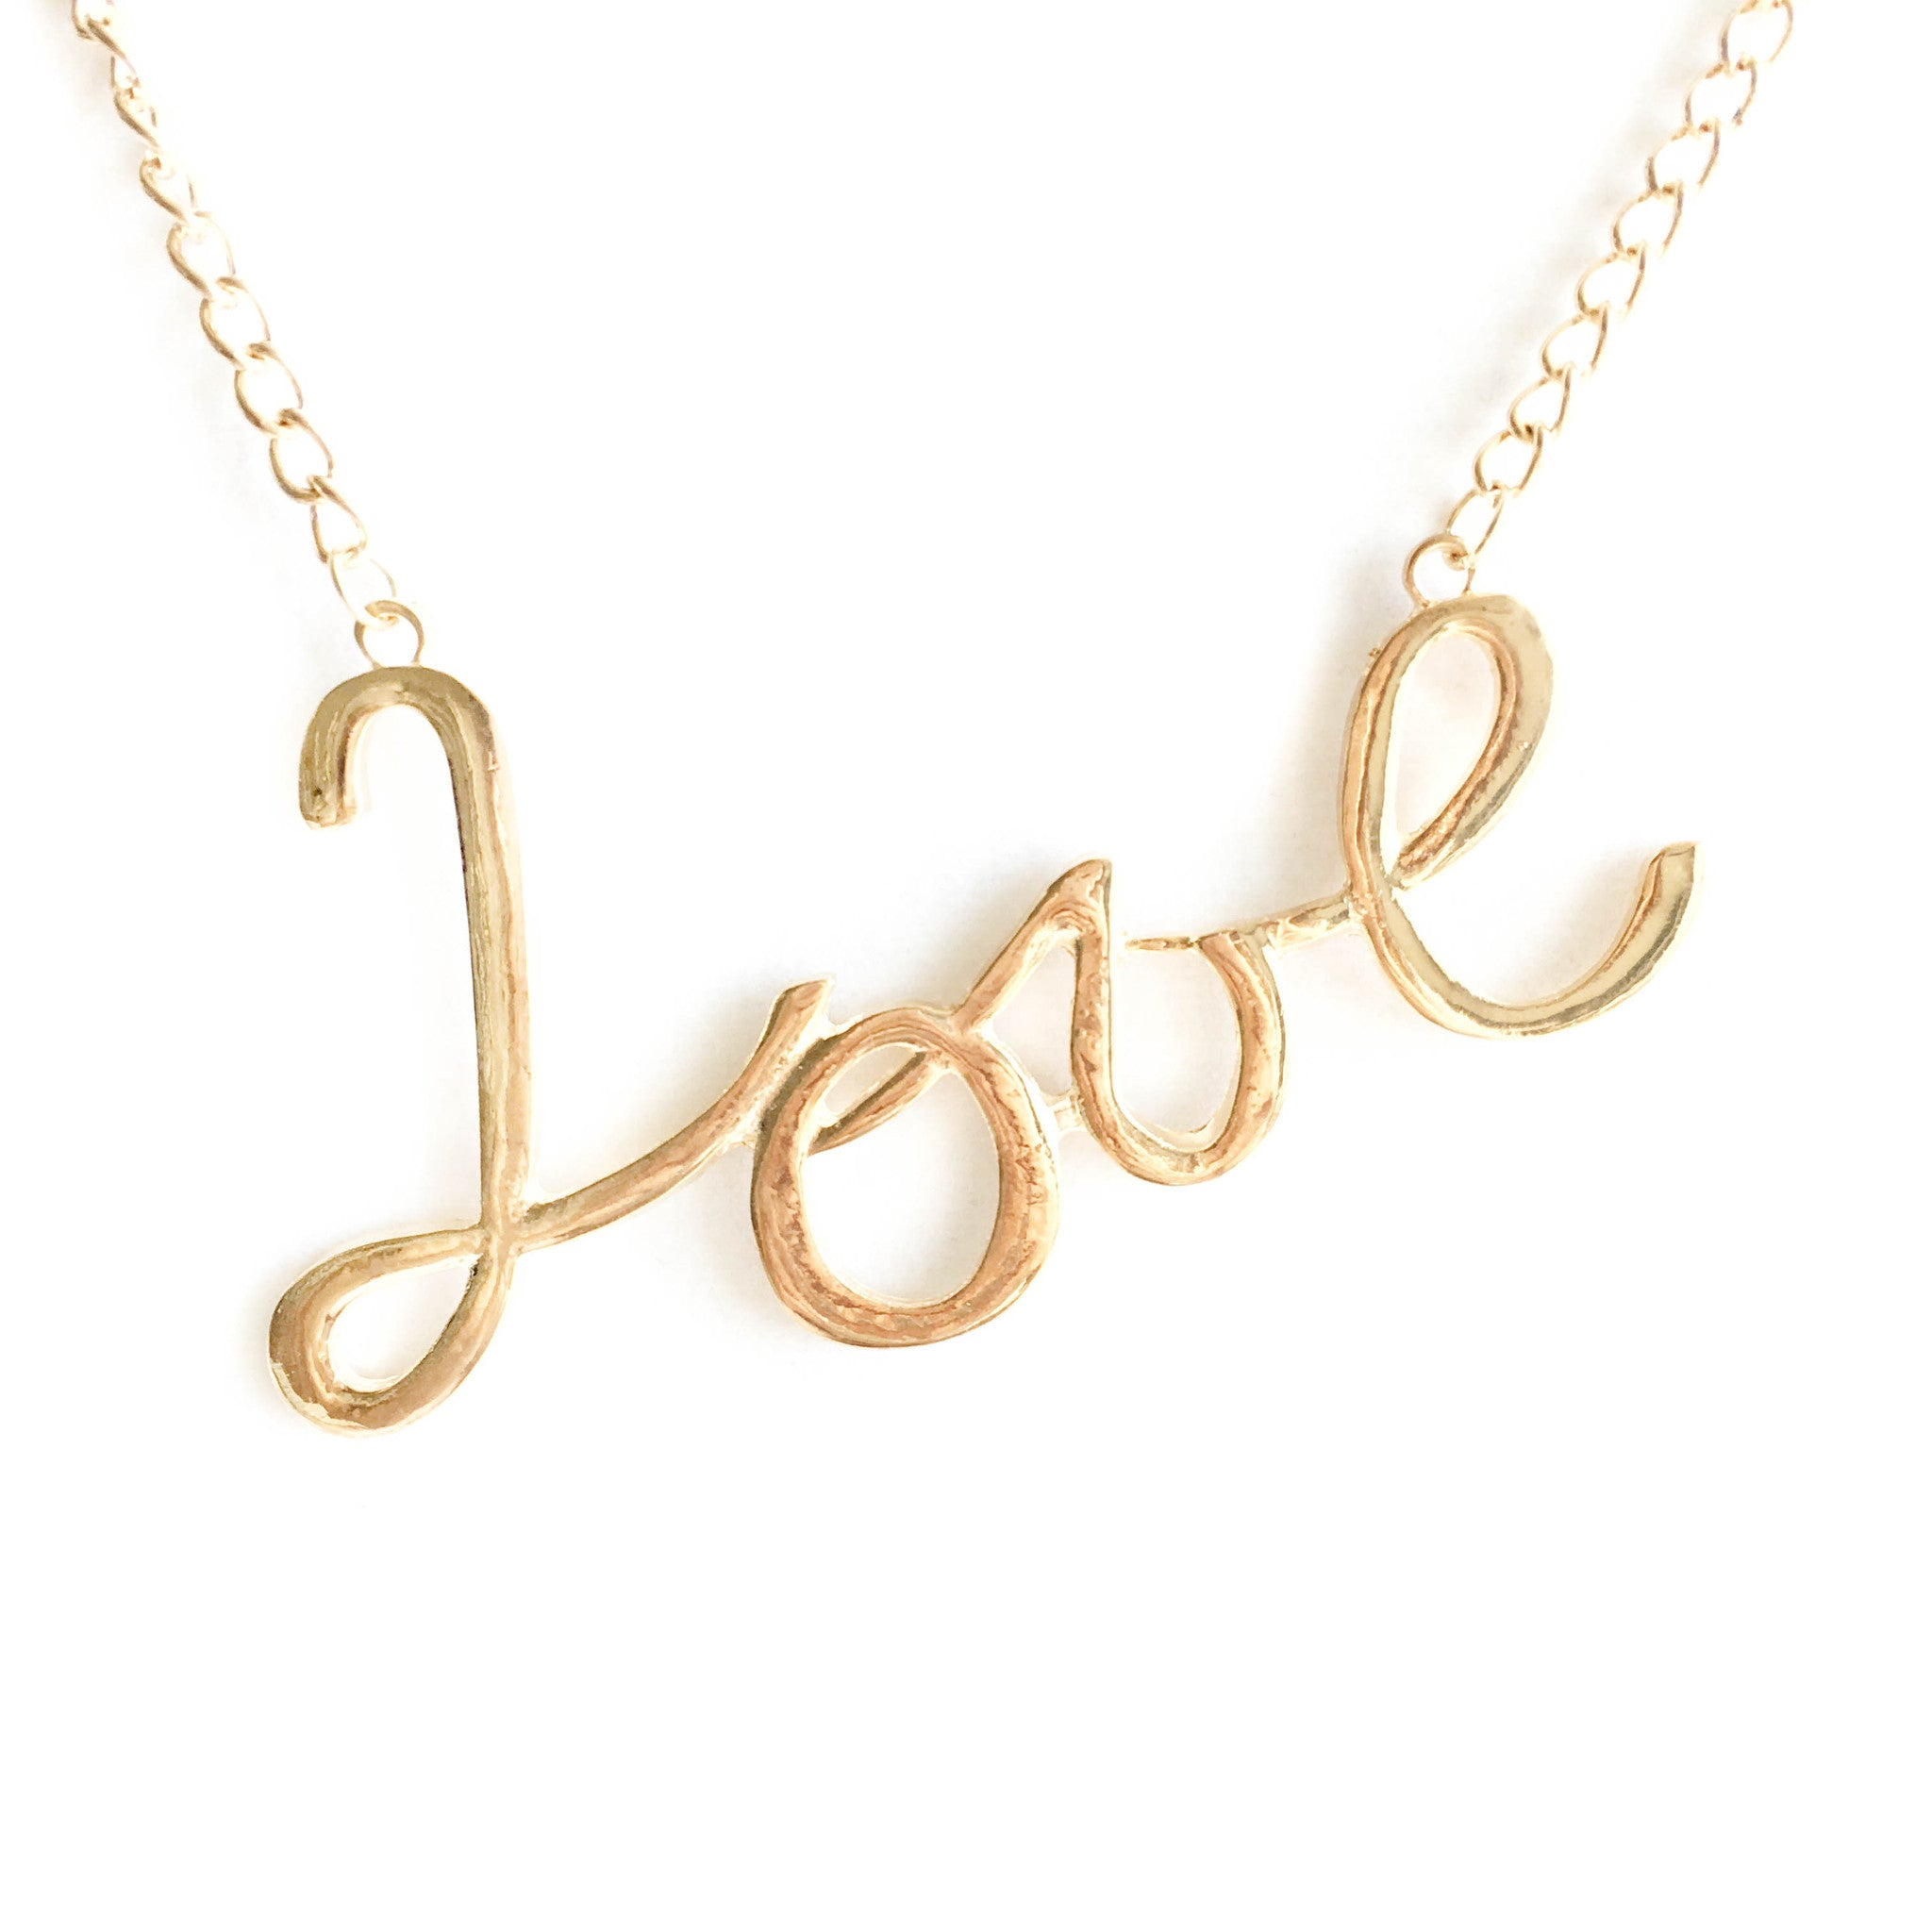 Say It Out Love Fashion Necklace - Micha Store  - 1